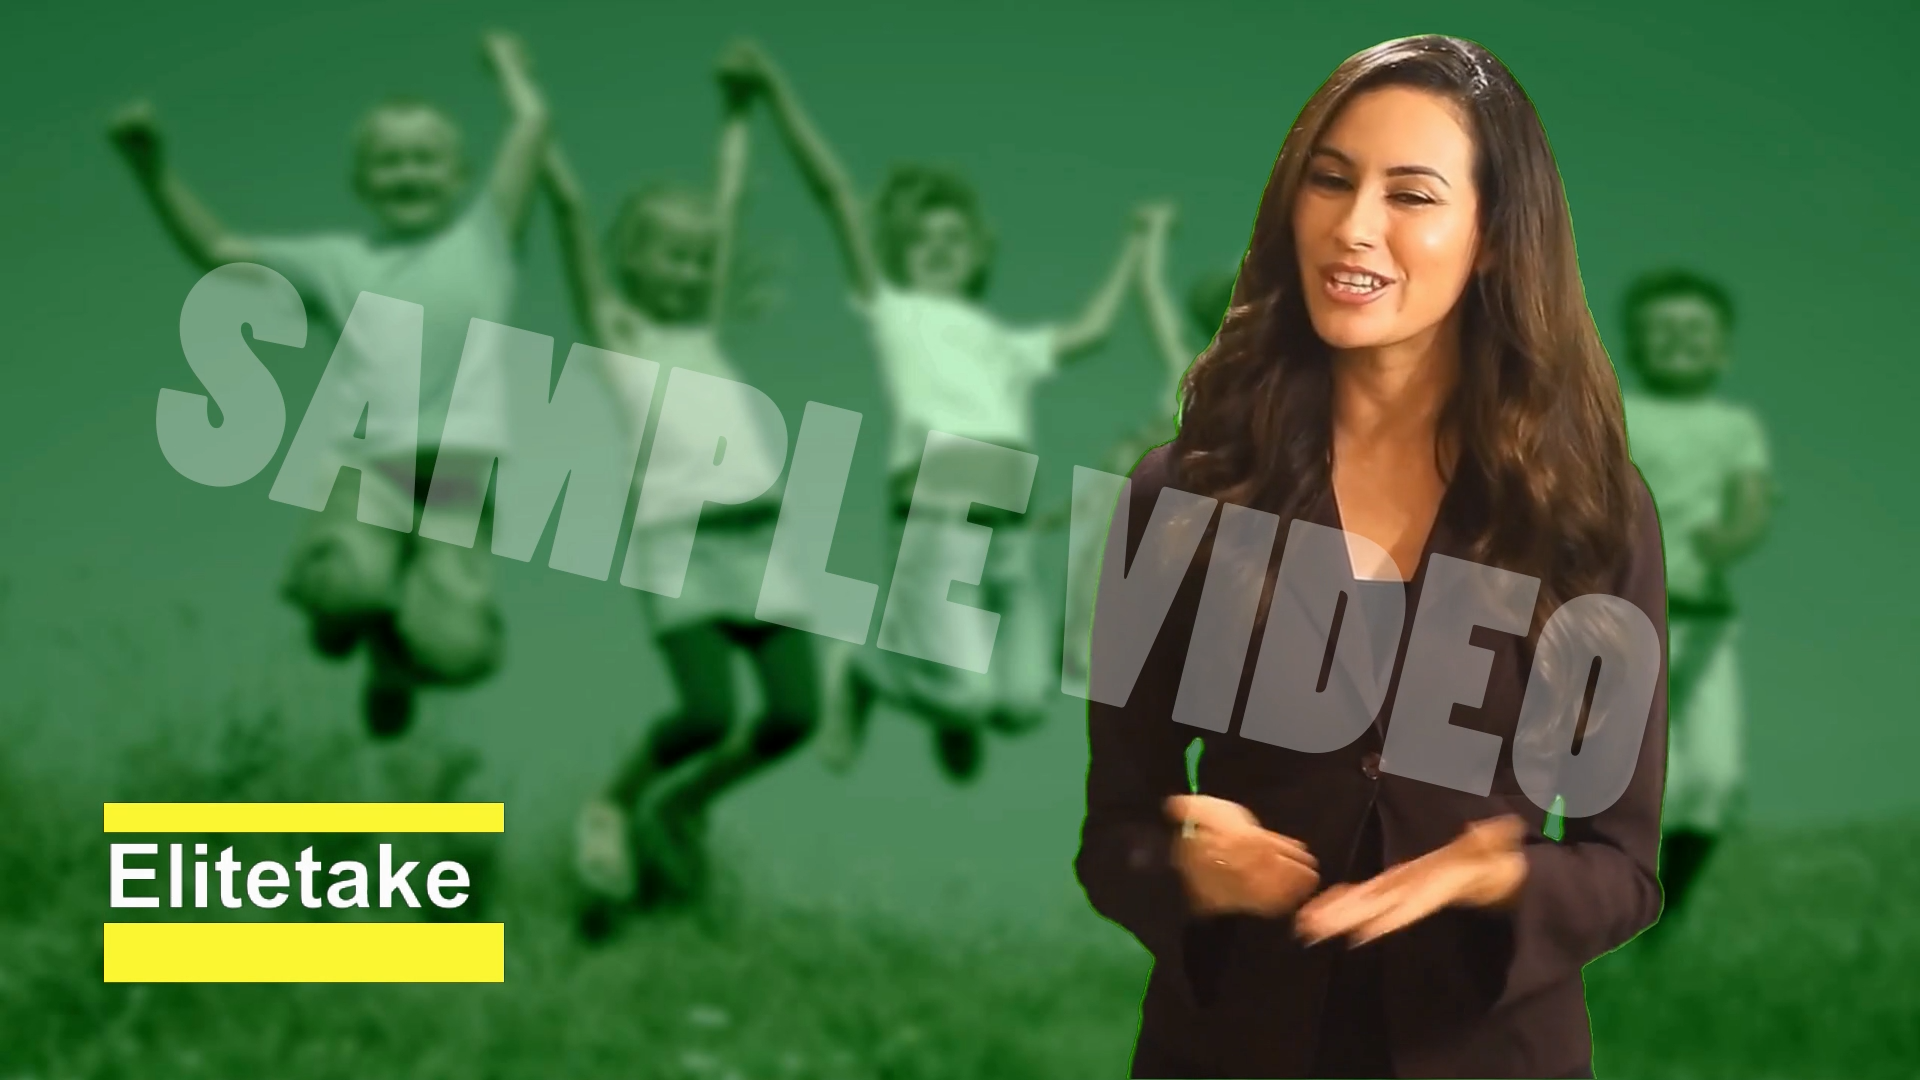 I will make real human voice video ads for your business